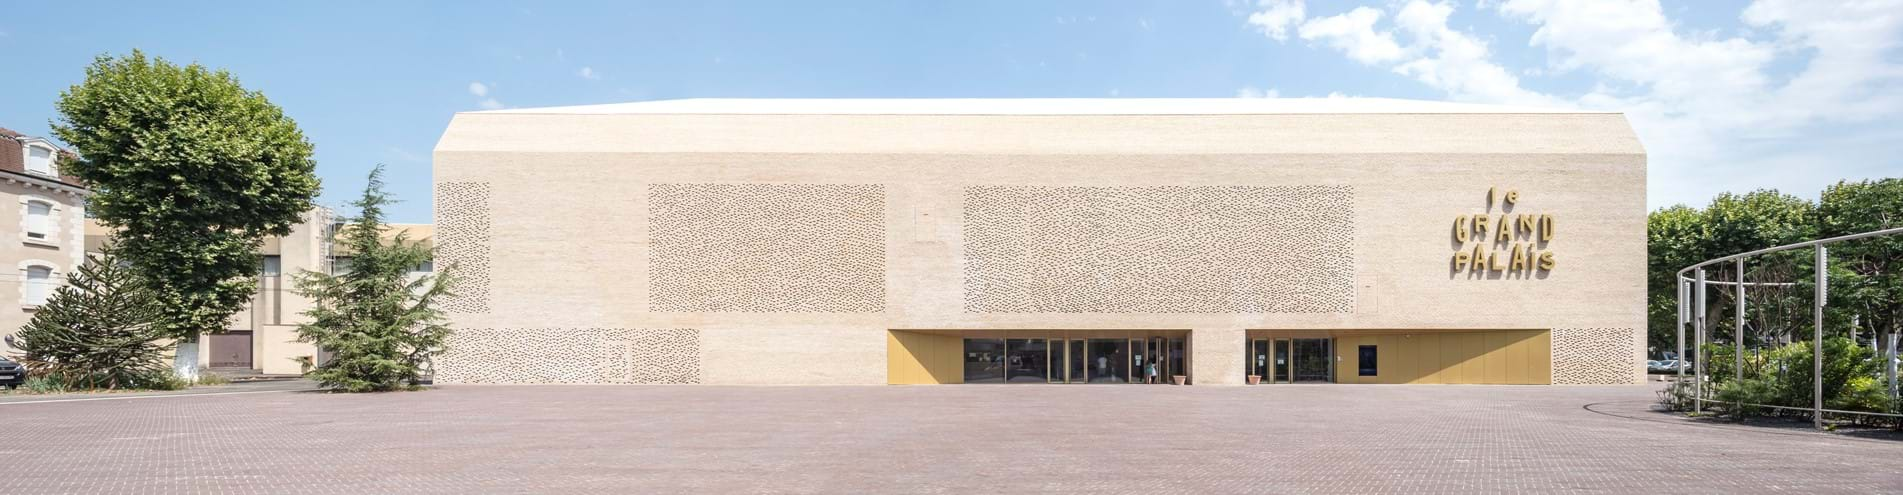 'Le Grand Palais' cinema in Cahors constructed using the new linea 9001